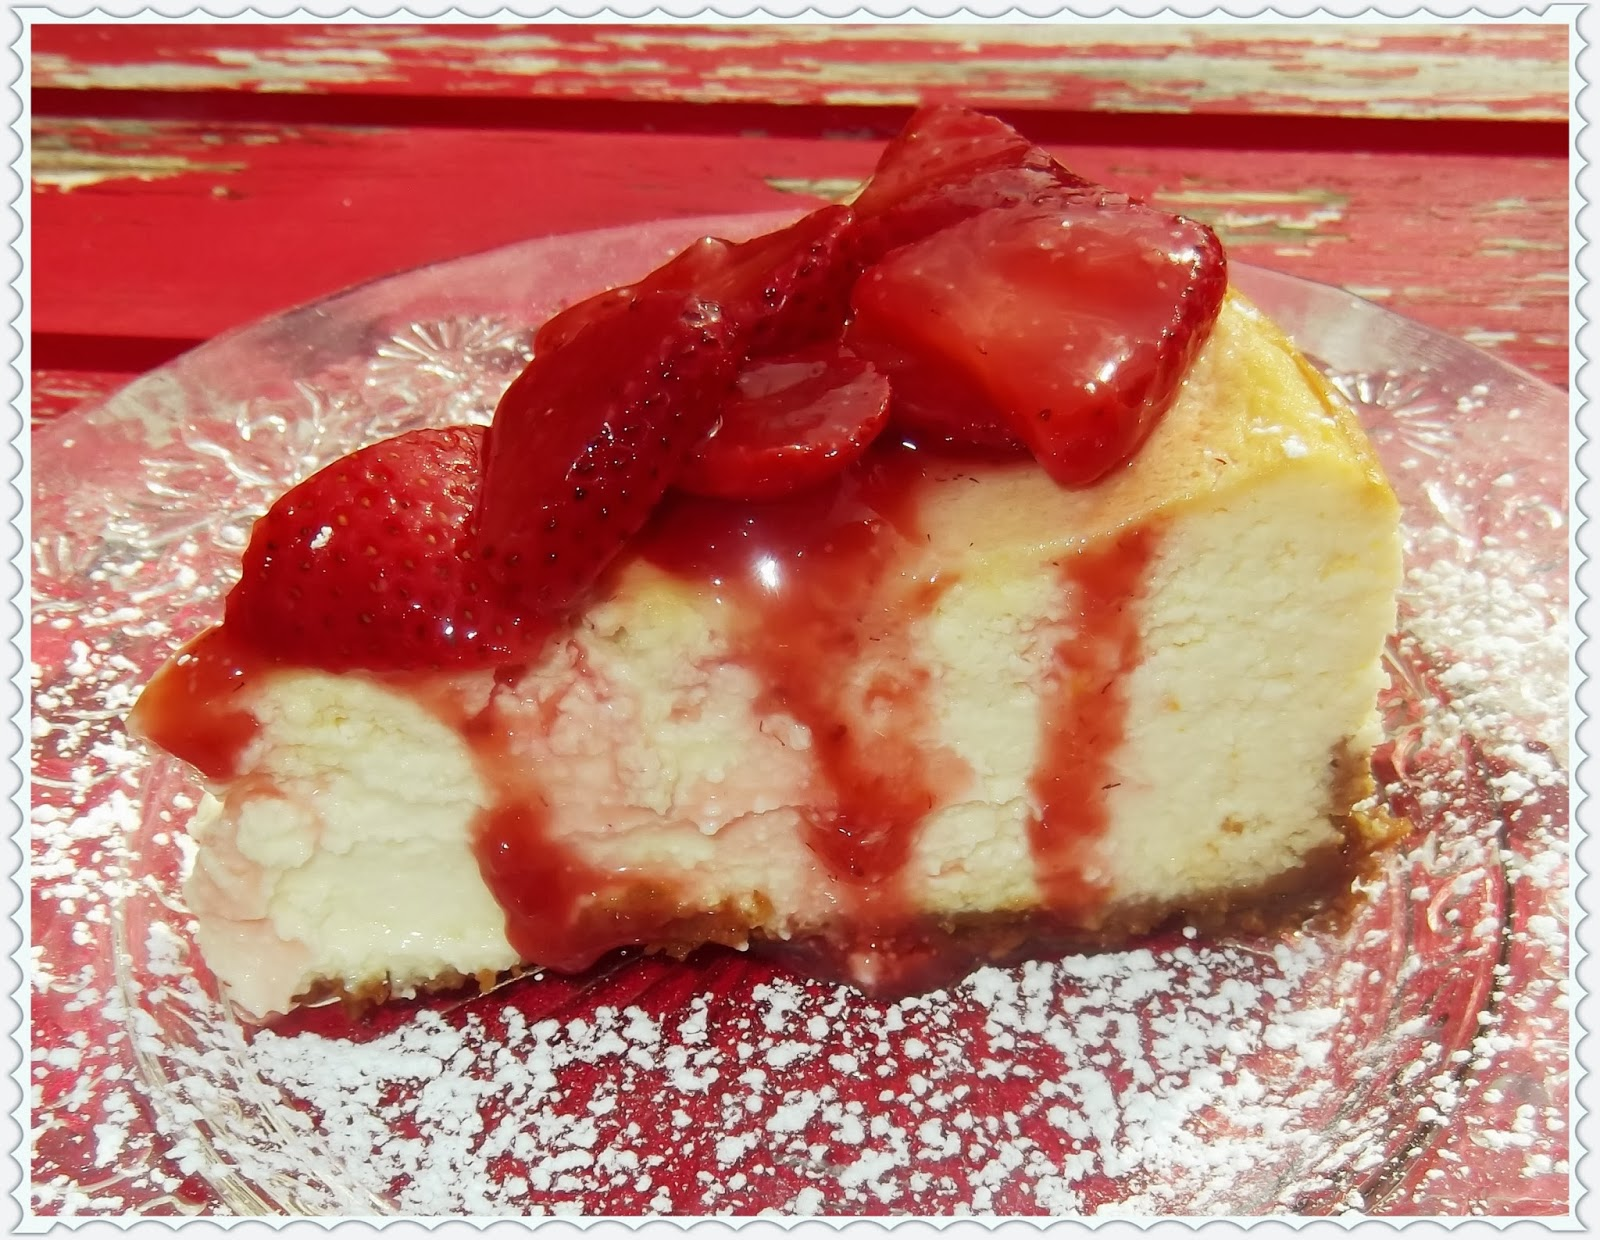 Rosie's Country Baking: Italian Cheesecake with Strawberries